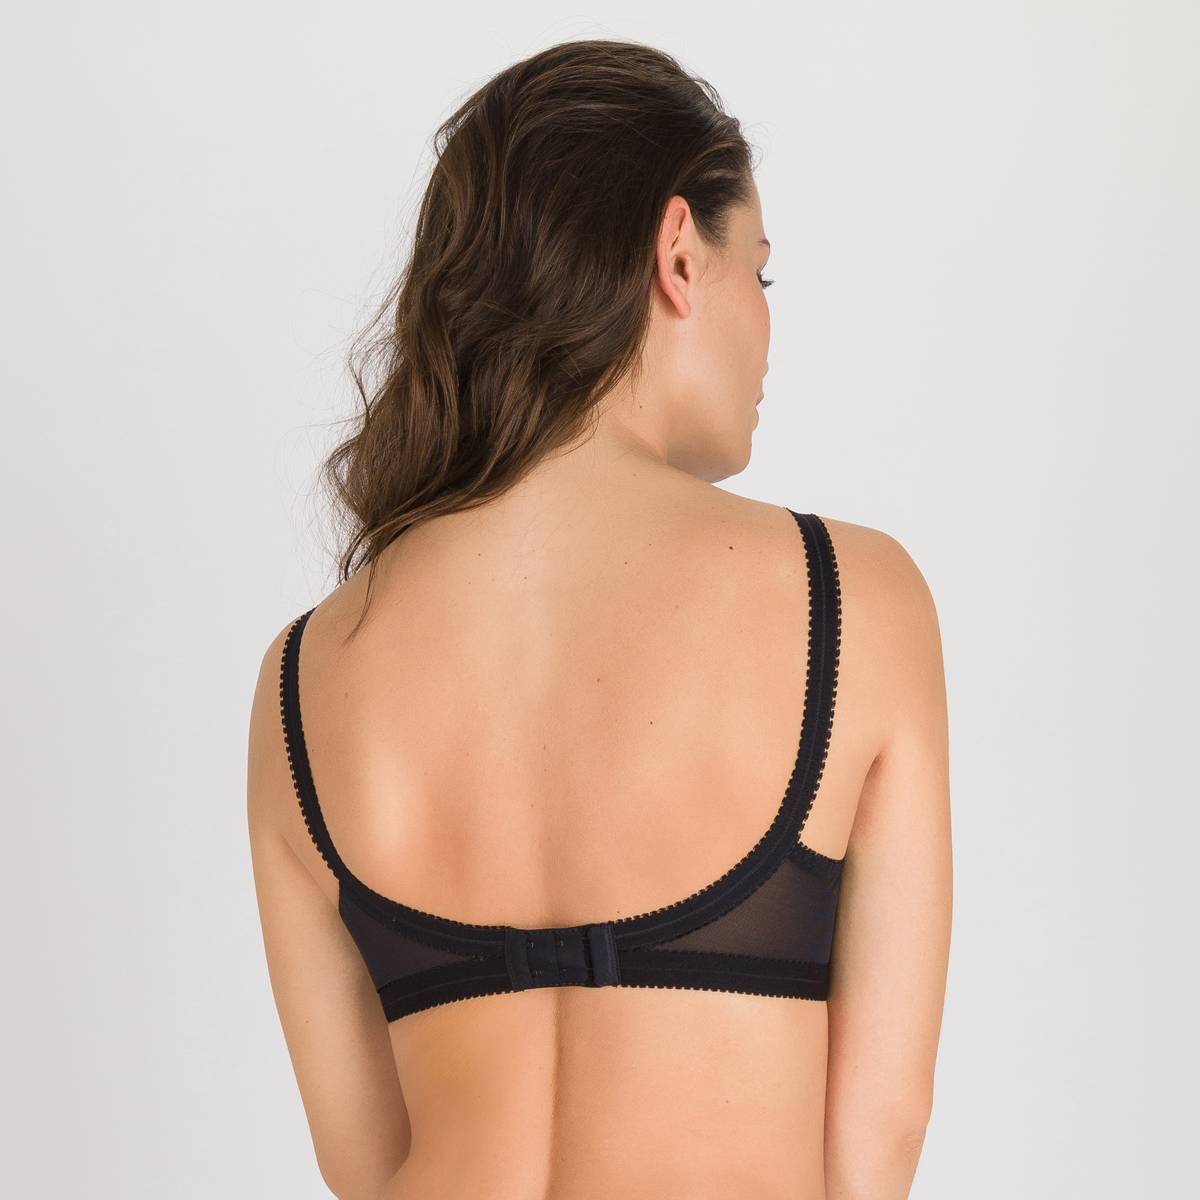 Reggiseno senza ferretto nero Criss Cross 165, , PLAYTEX